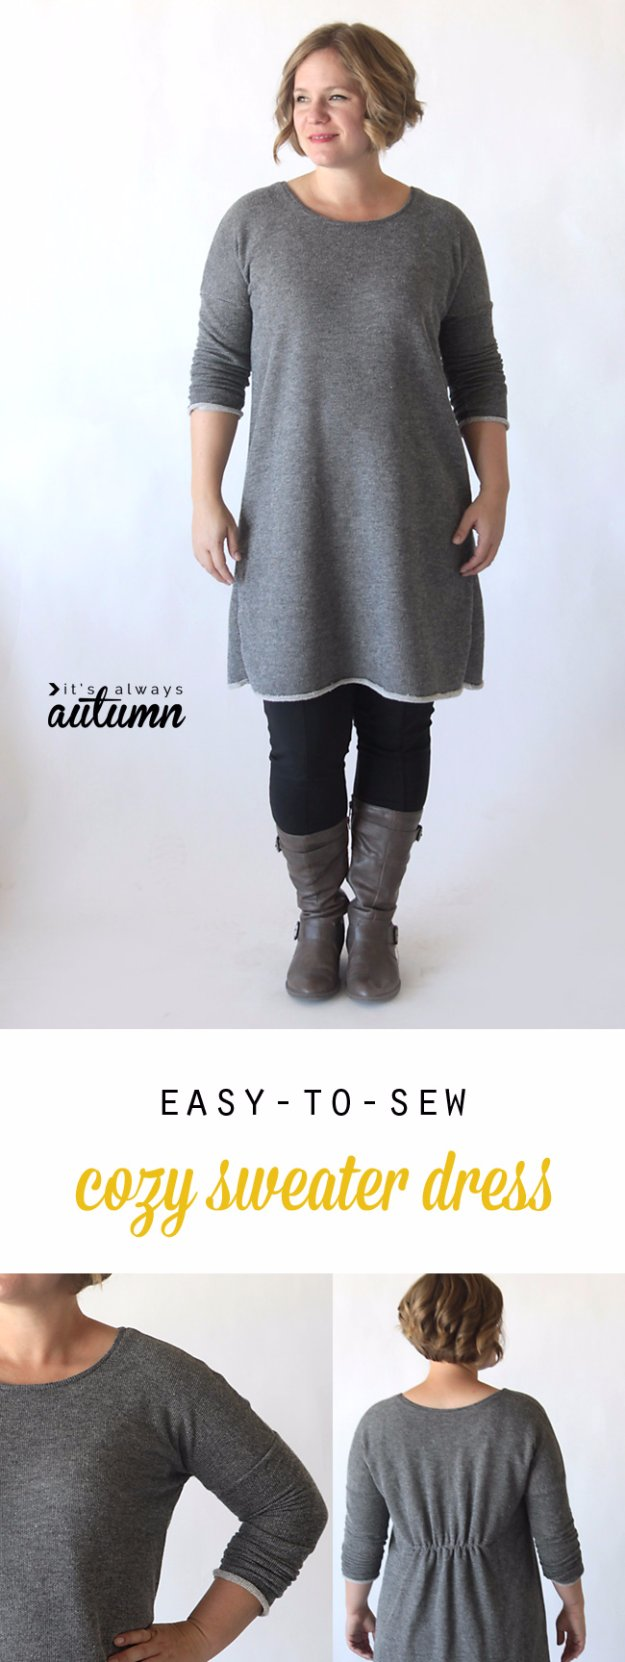 DIY Sewing Projects for Women - Easy to Sew Breezy Tee Long Sleeve Sweater Dress - How to Sew Dresses, Blouses, Pants, Tops and Fashion. Step by Step Tutorials and Instructions #sewing #fashion